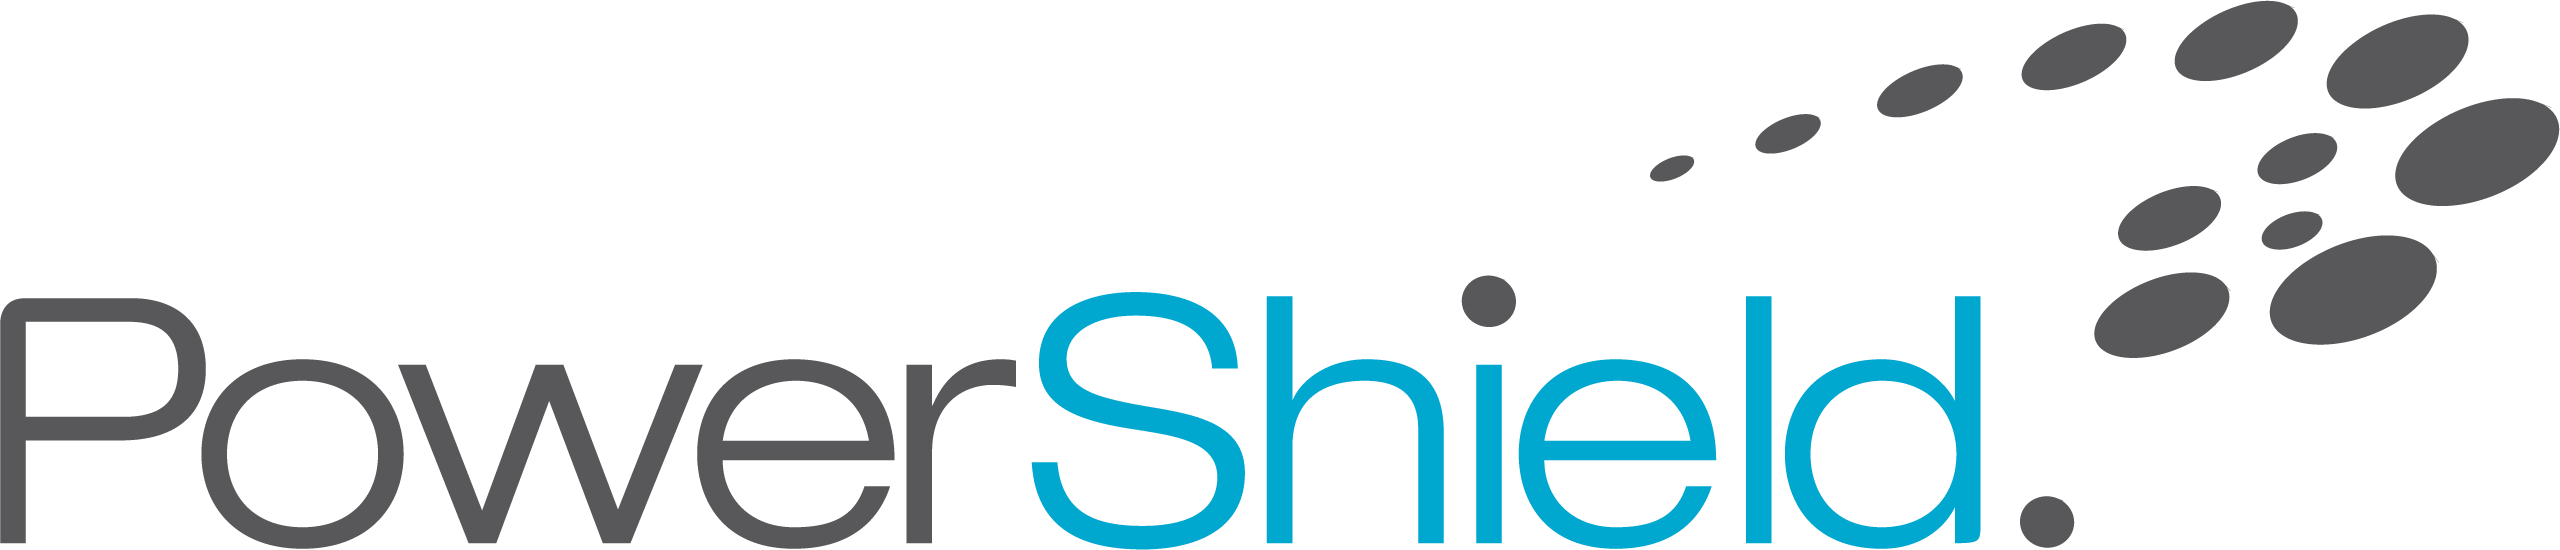 PowerShield logo-1